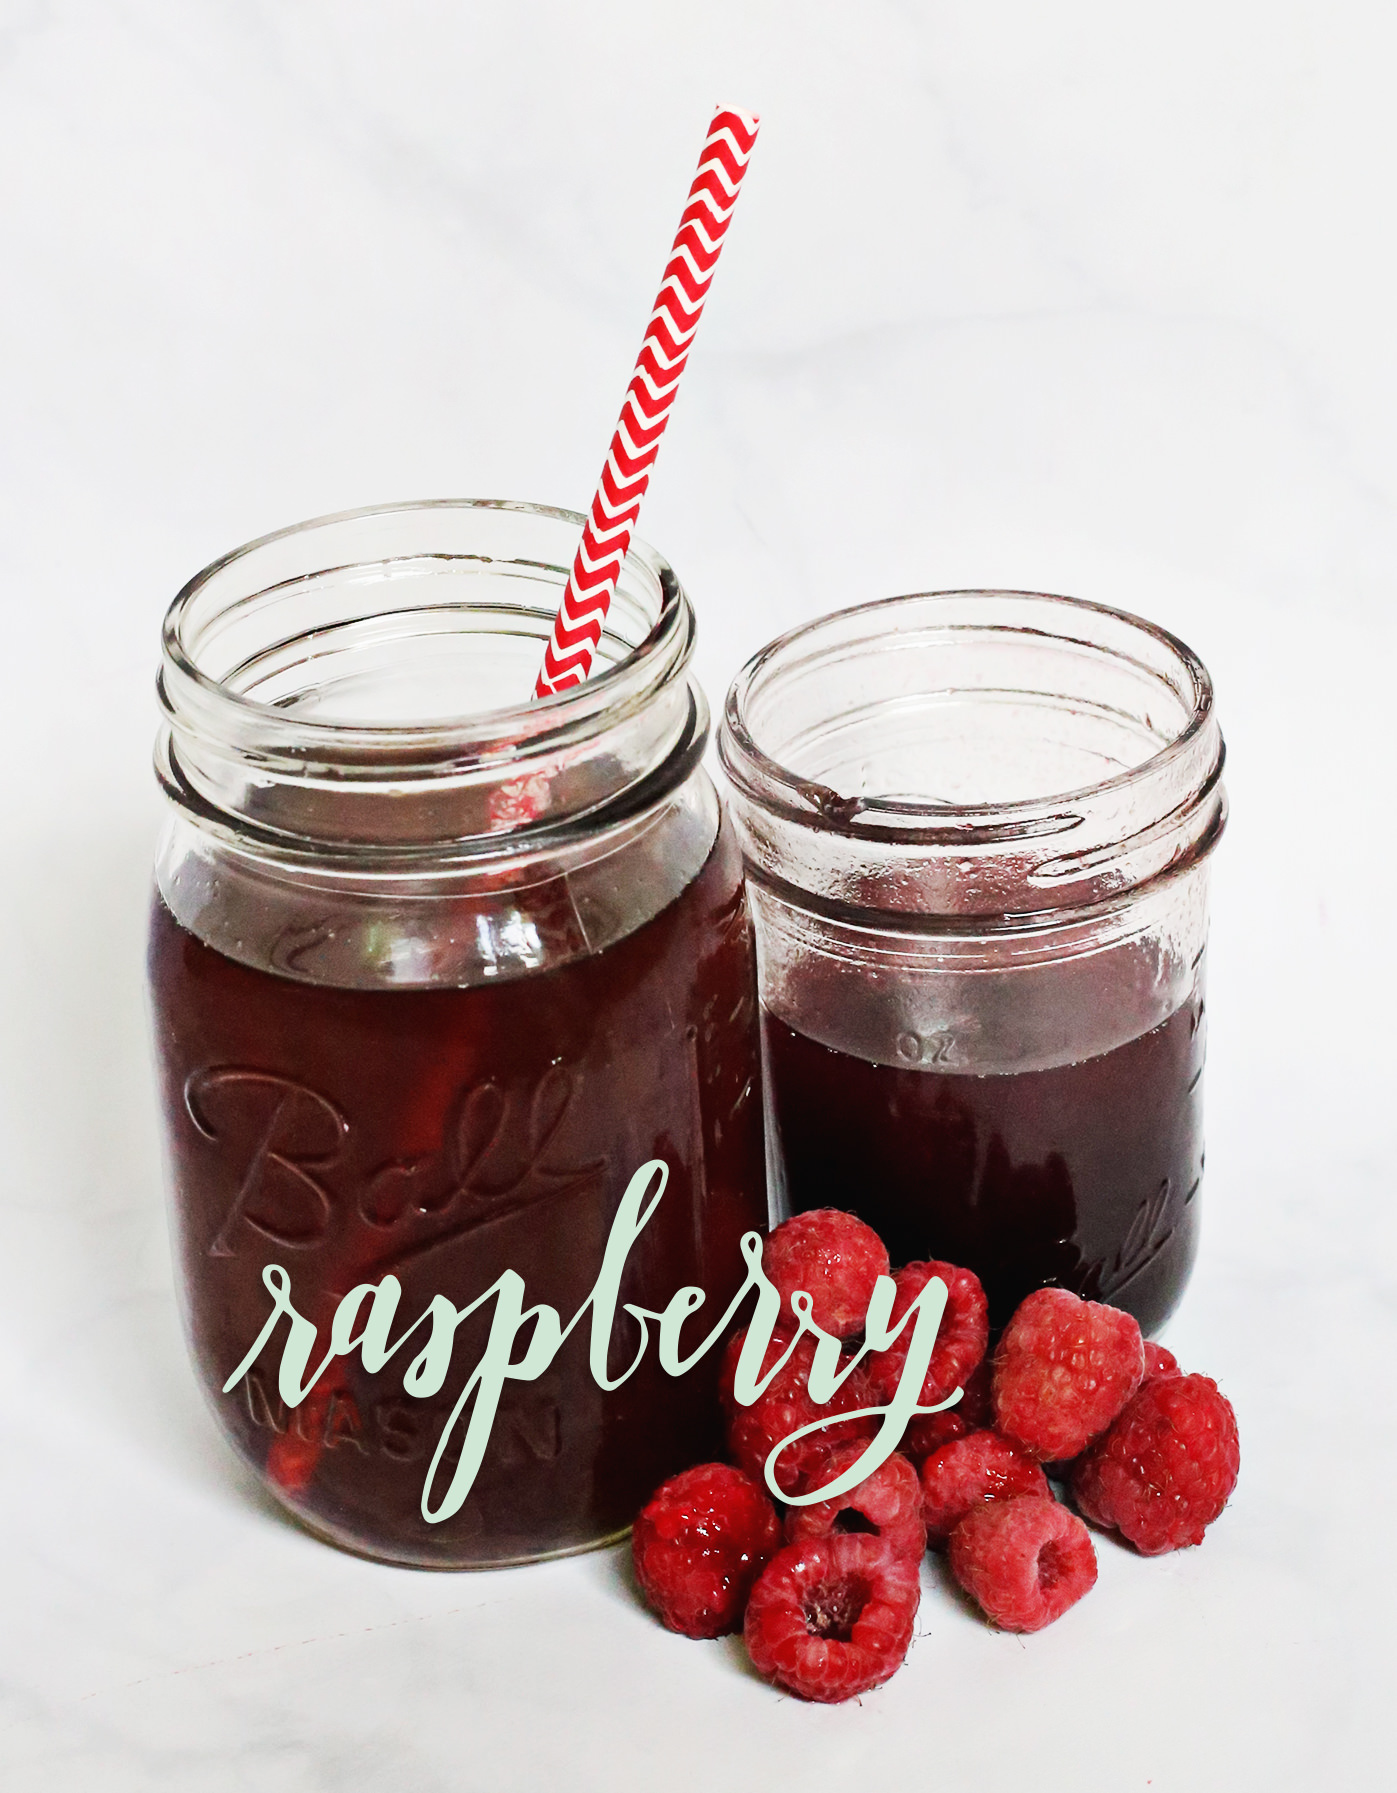 Stir up some raspberry-flavored simple syrup to add flavor to your iced tea! On Lily & Val Living